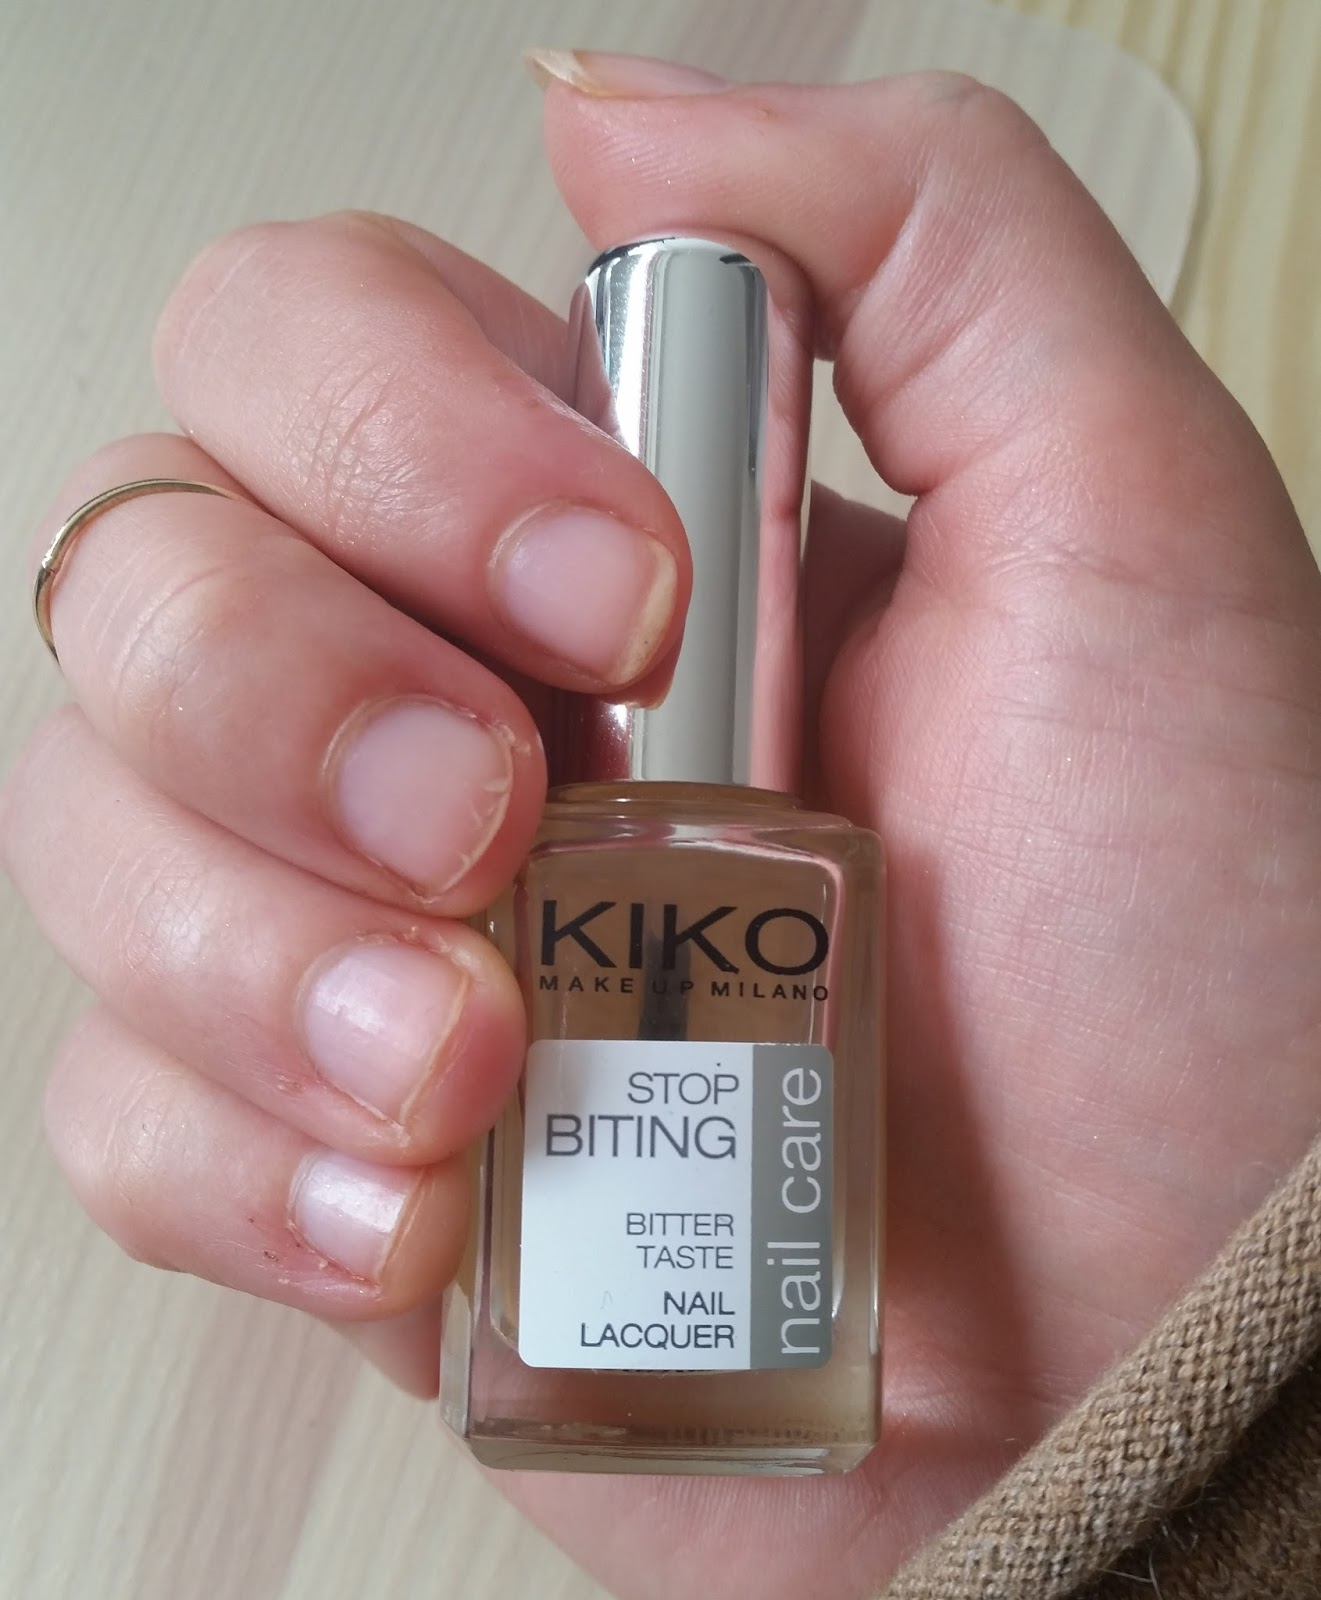 Confessions Of A Nail Biter: How To Stop Biting Your Nails